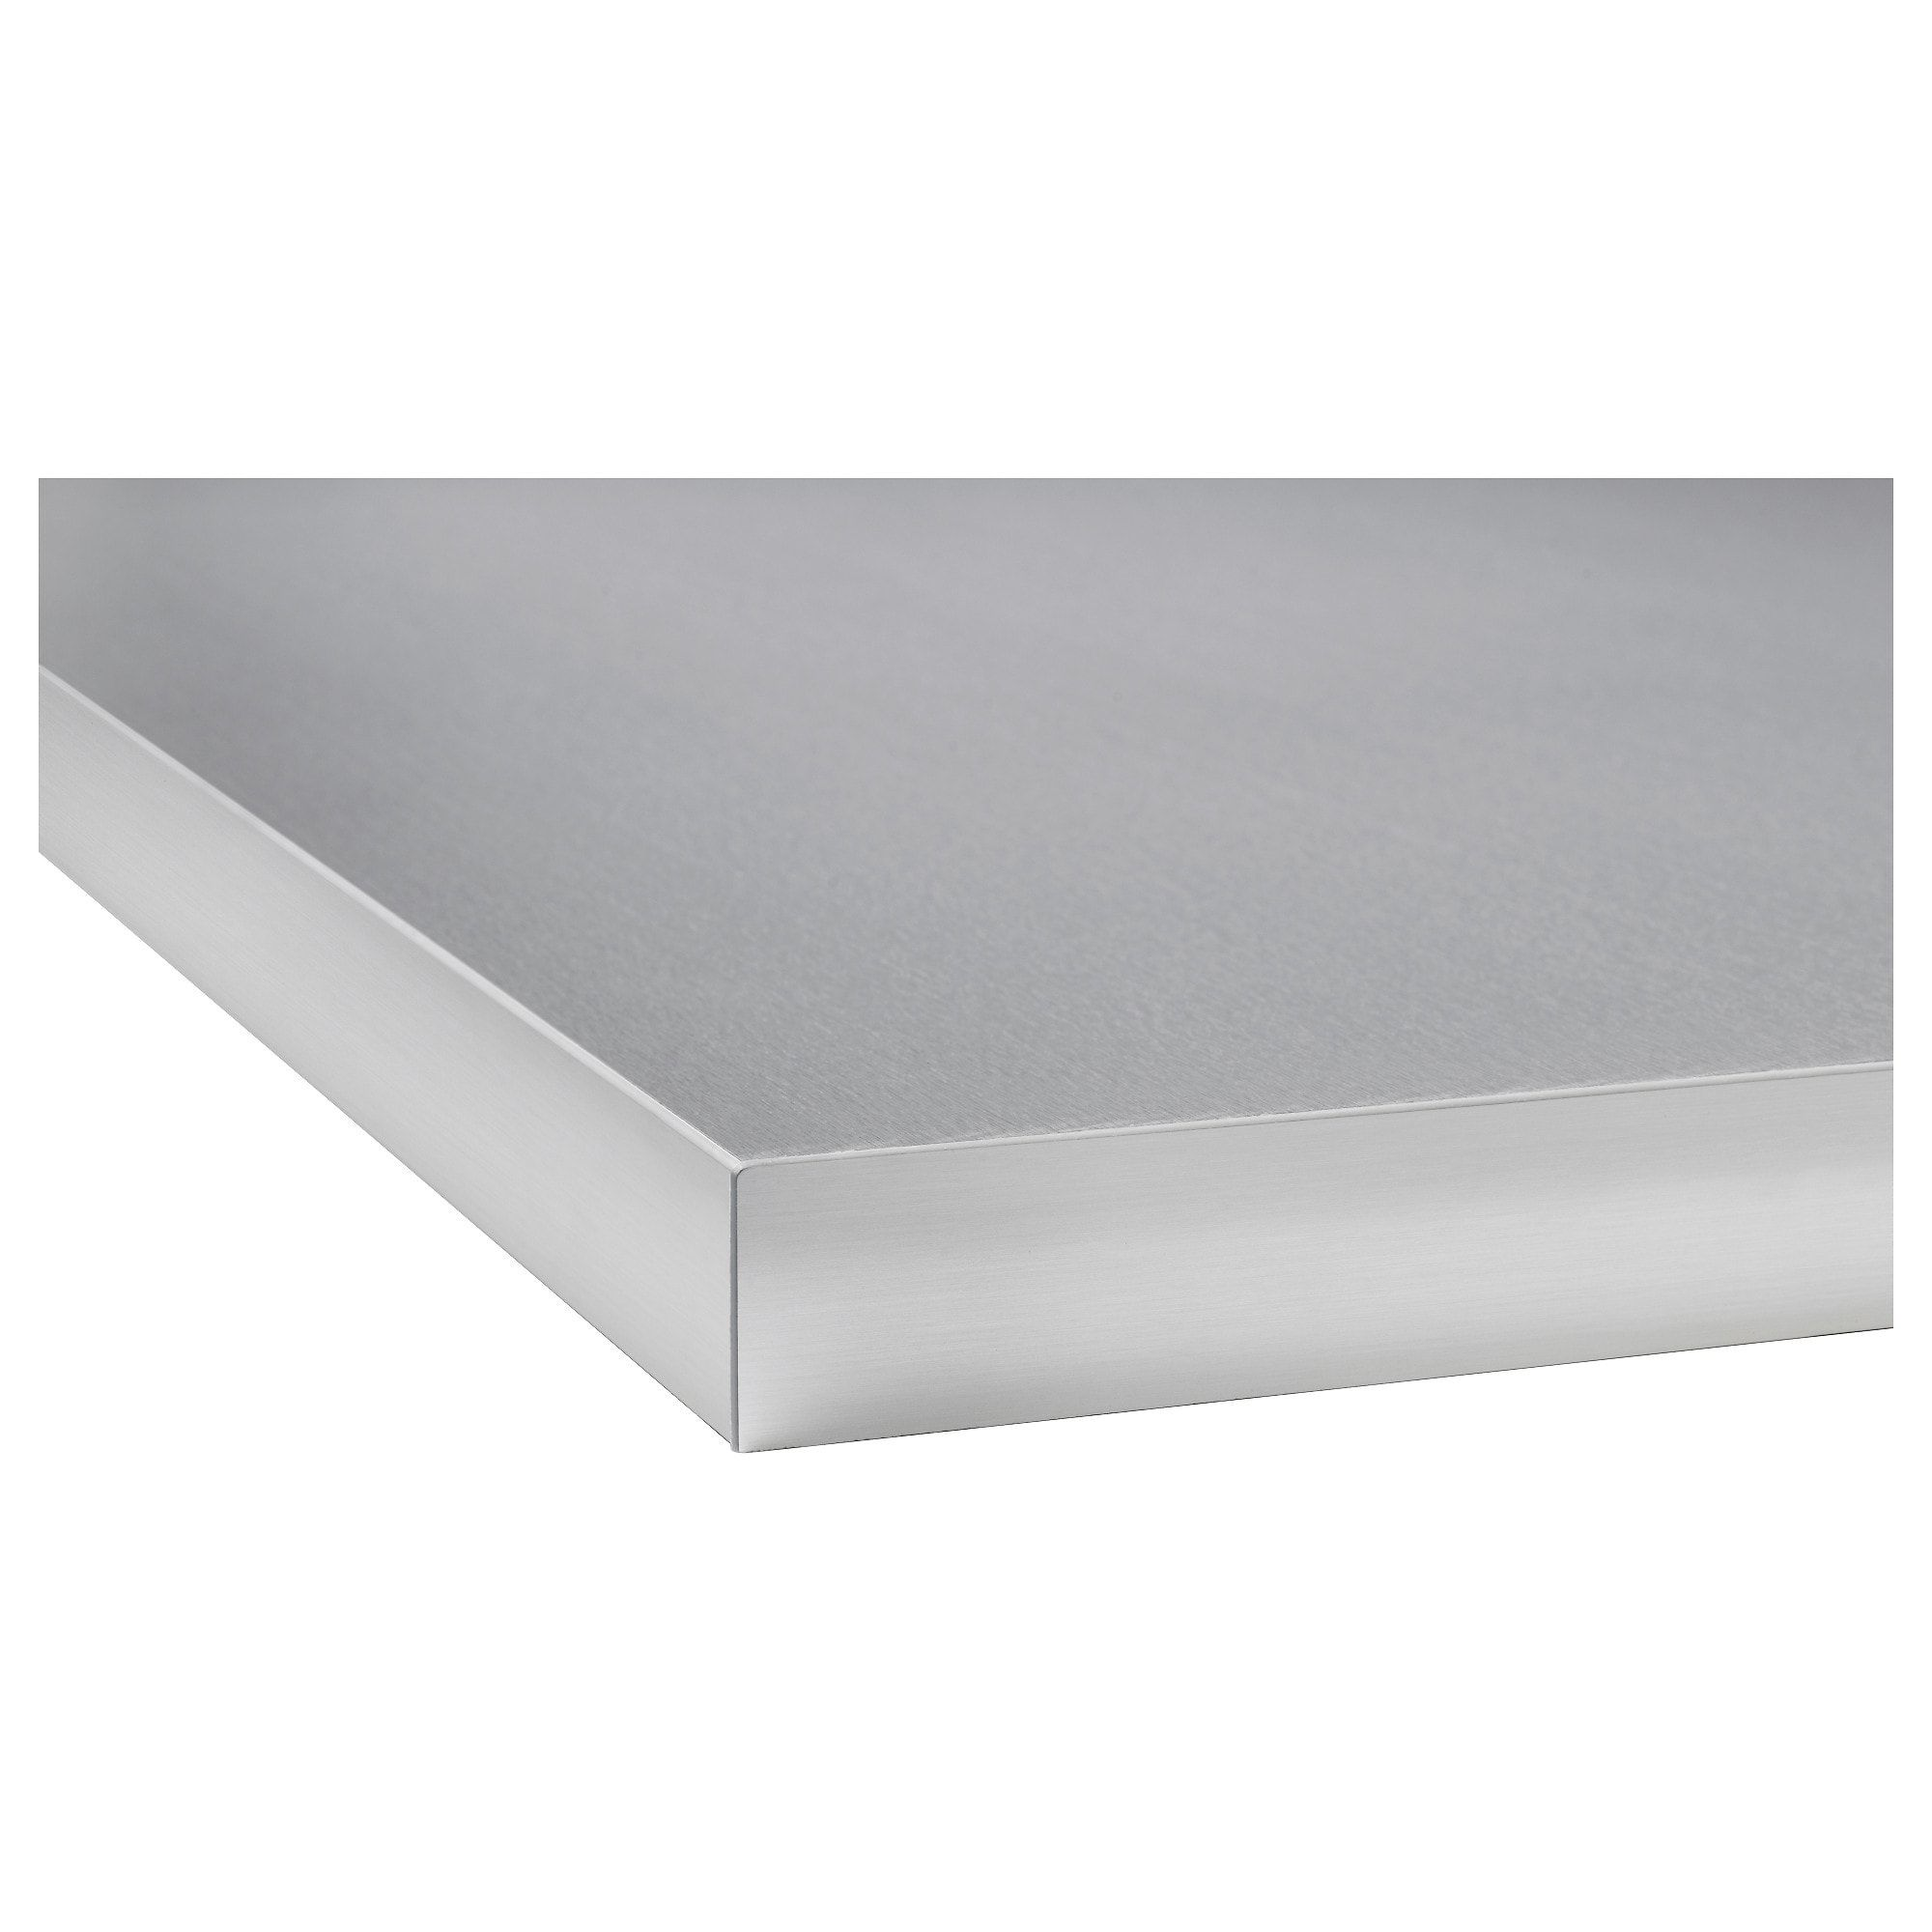 Hallestad Countertop Double Sided White Aluminum Effect Aluminum Effect Metal Effect Edge Laminate With Metal Effect Edge 98x1 1 2 Ikea Metal Countertops Kitchen Metal Countertops Countertops